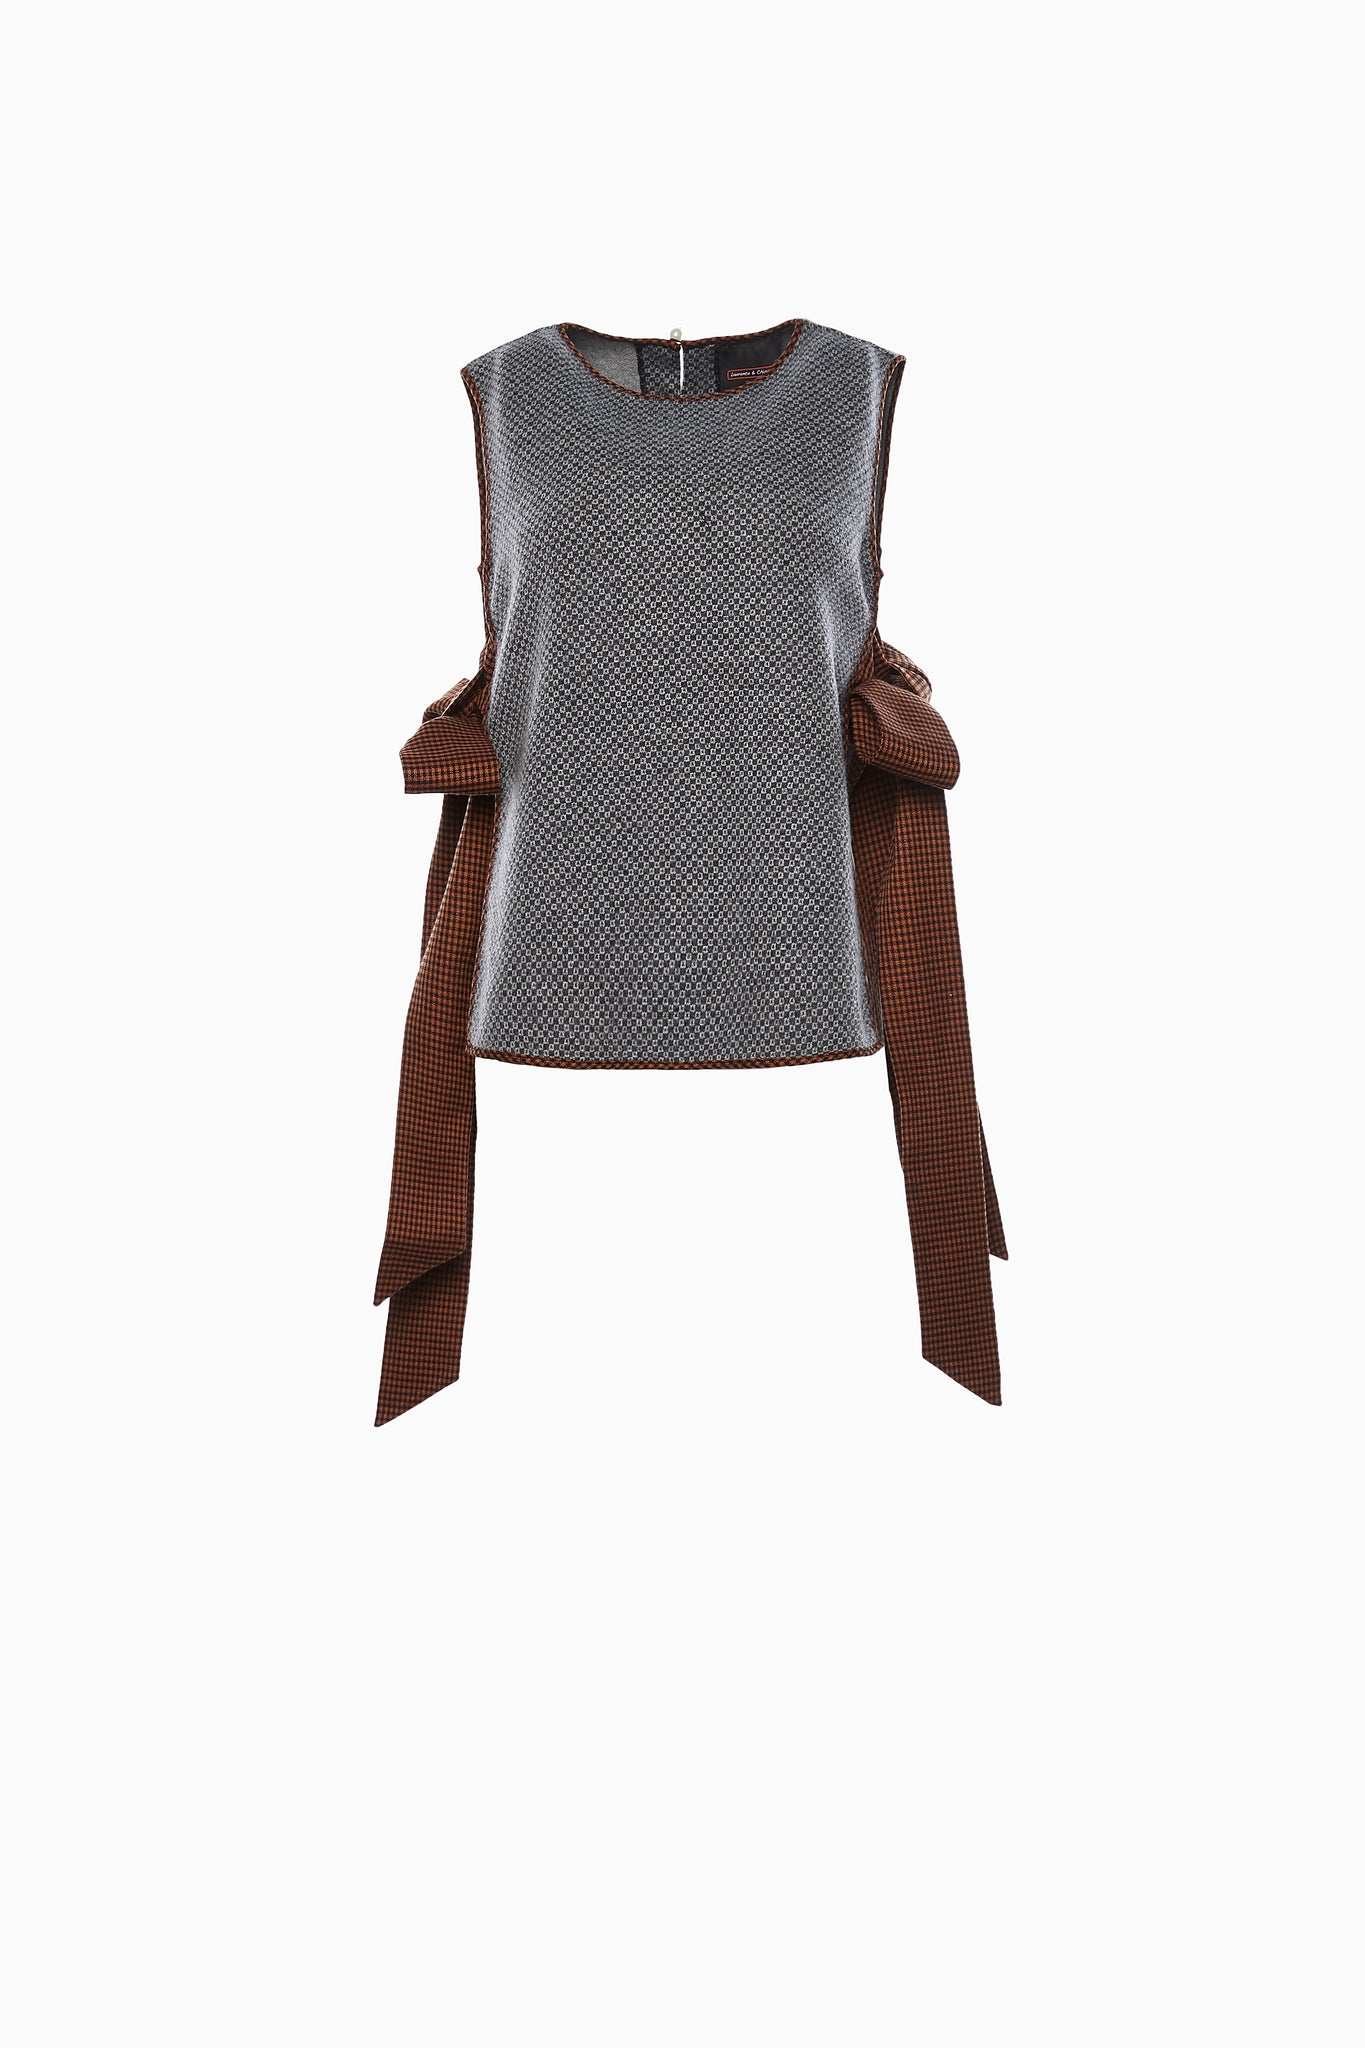 Grey Wool Tank with Bow Ties at Sides